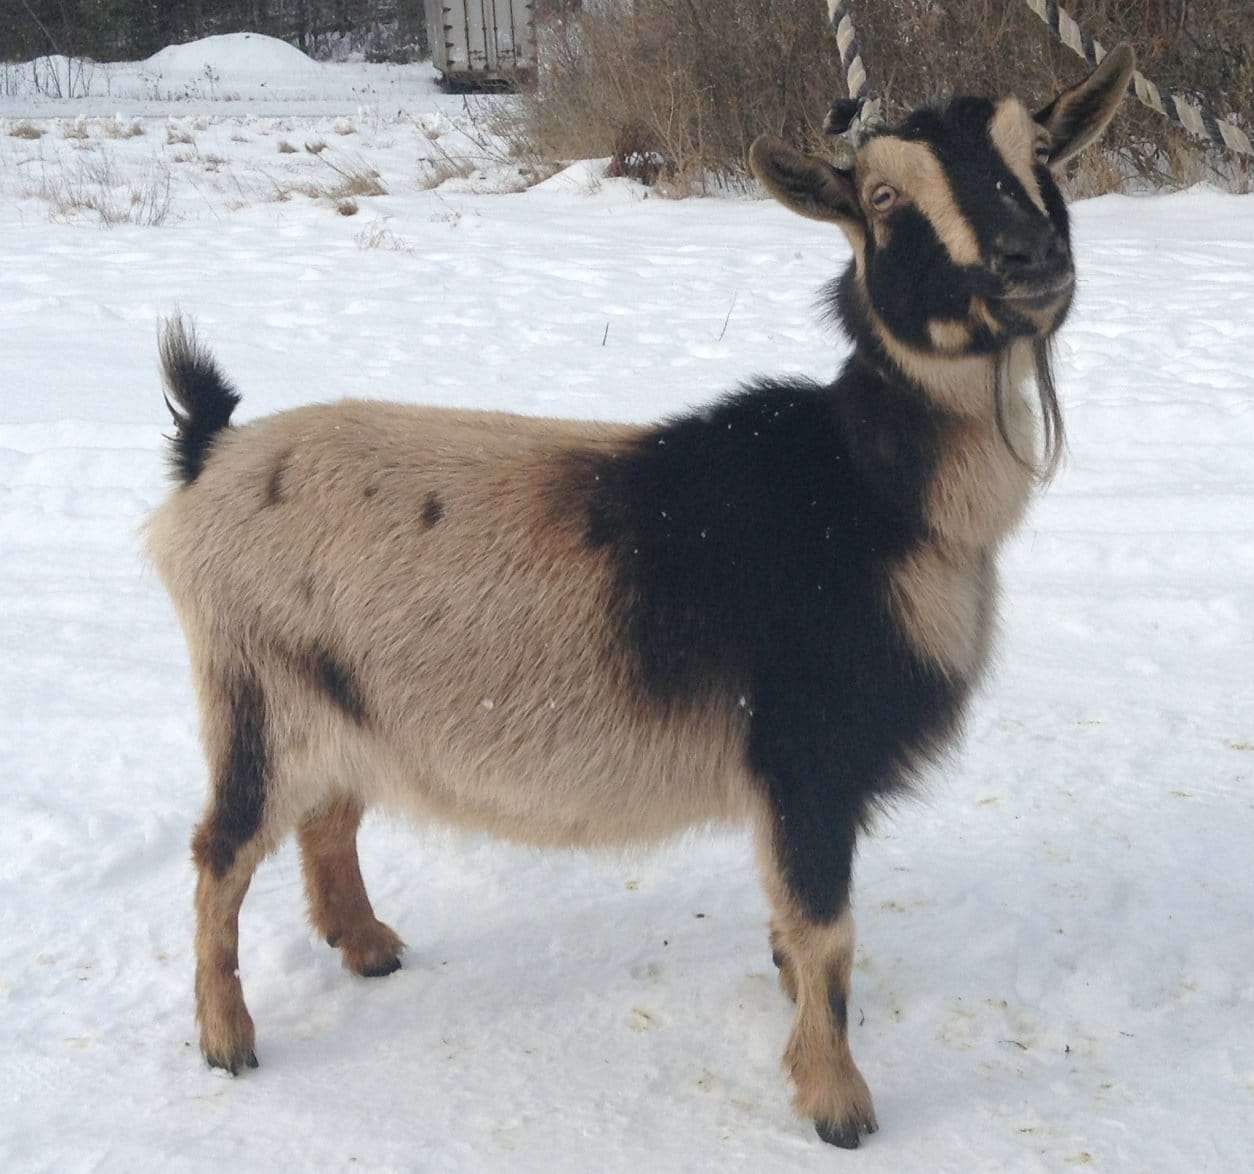 Blackberry Ridge Farm goat - Wolcott, VT 05680